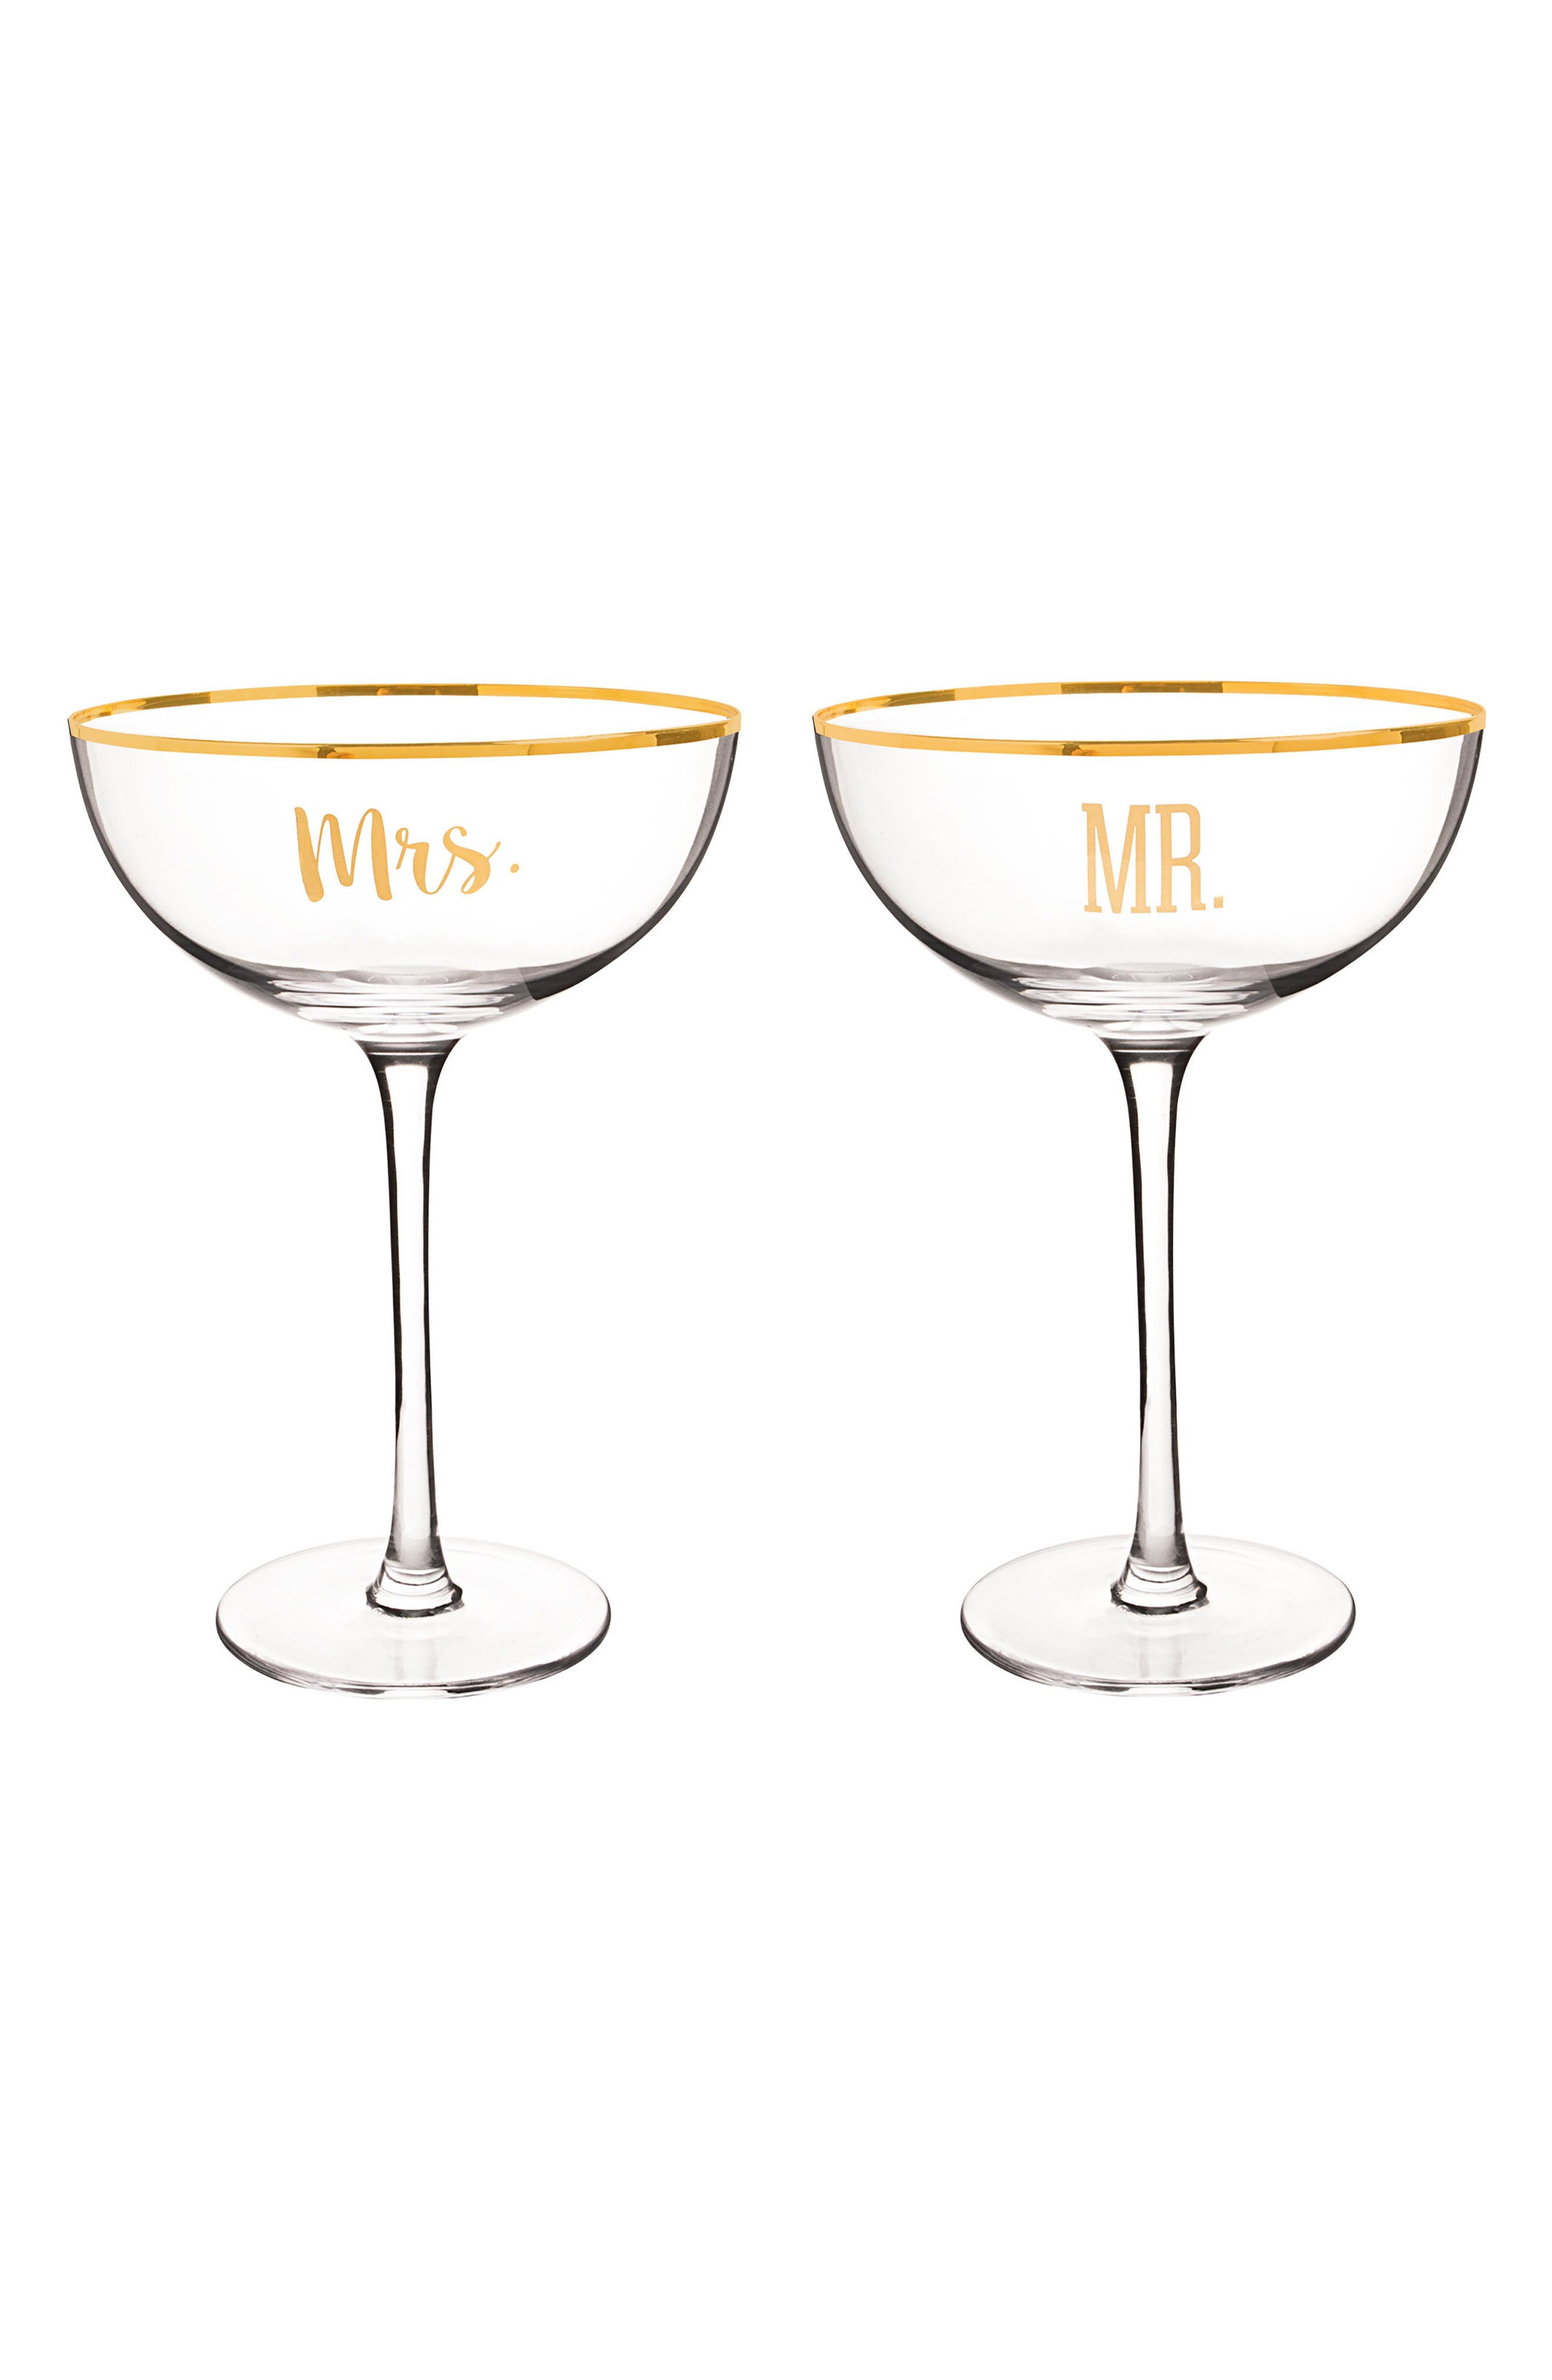 Mr. & Mrs. Set of 2 Champagne Coupe Toasting Glasses,                         Main,                         color, 710